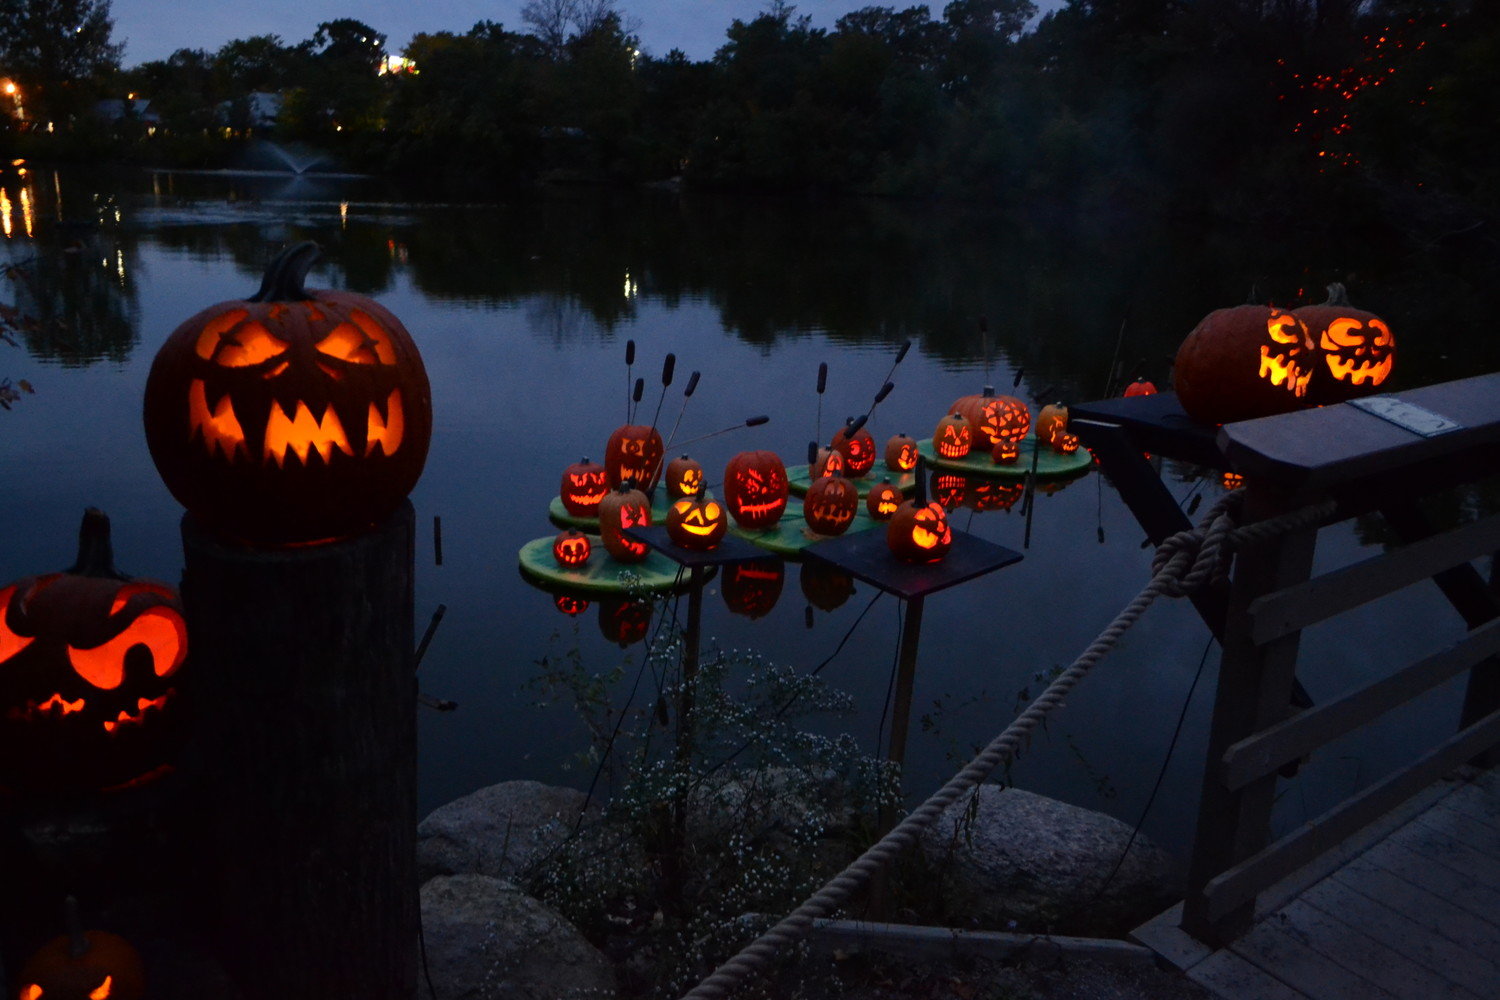 a 'spooktacular' spectacle   warwick beacon